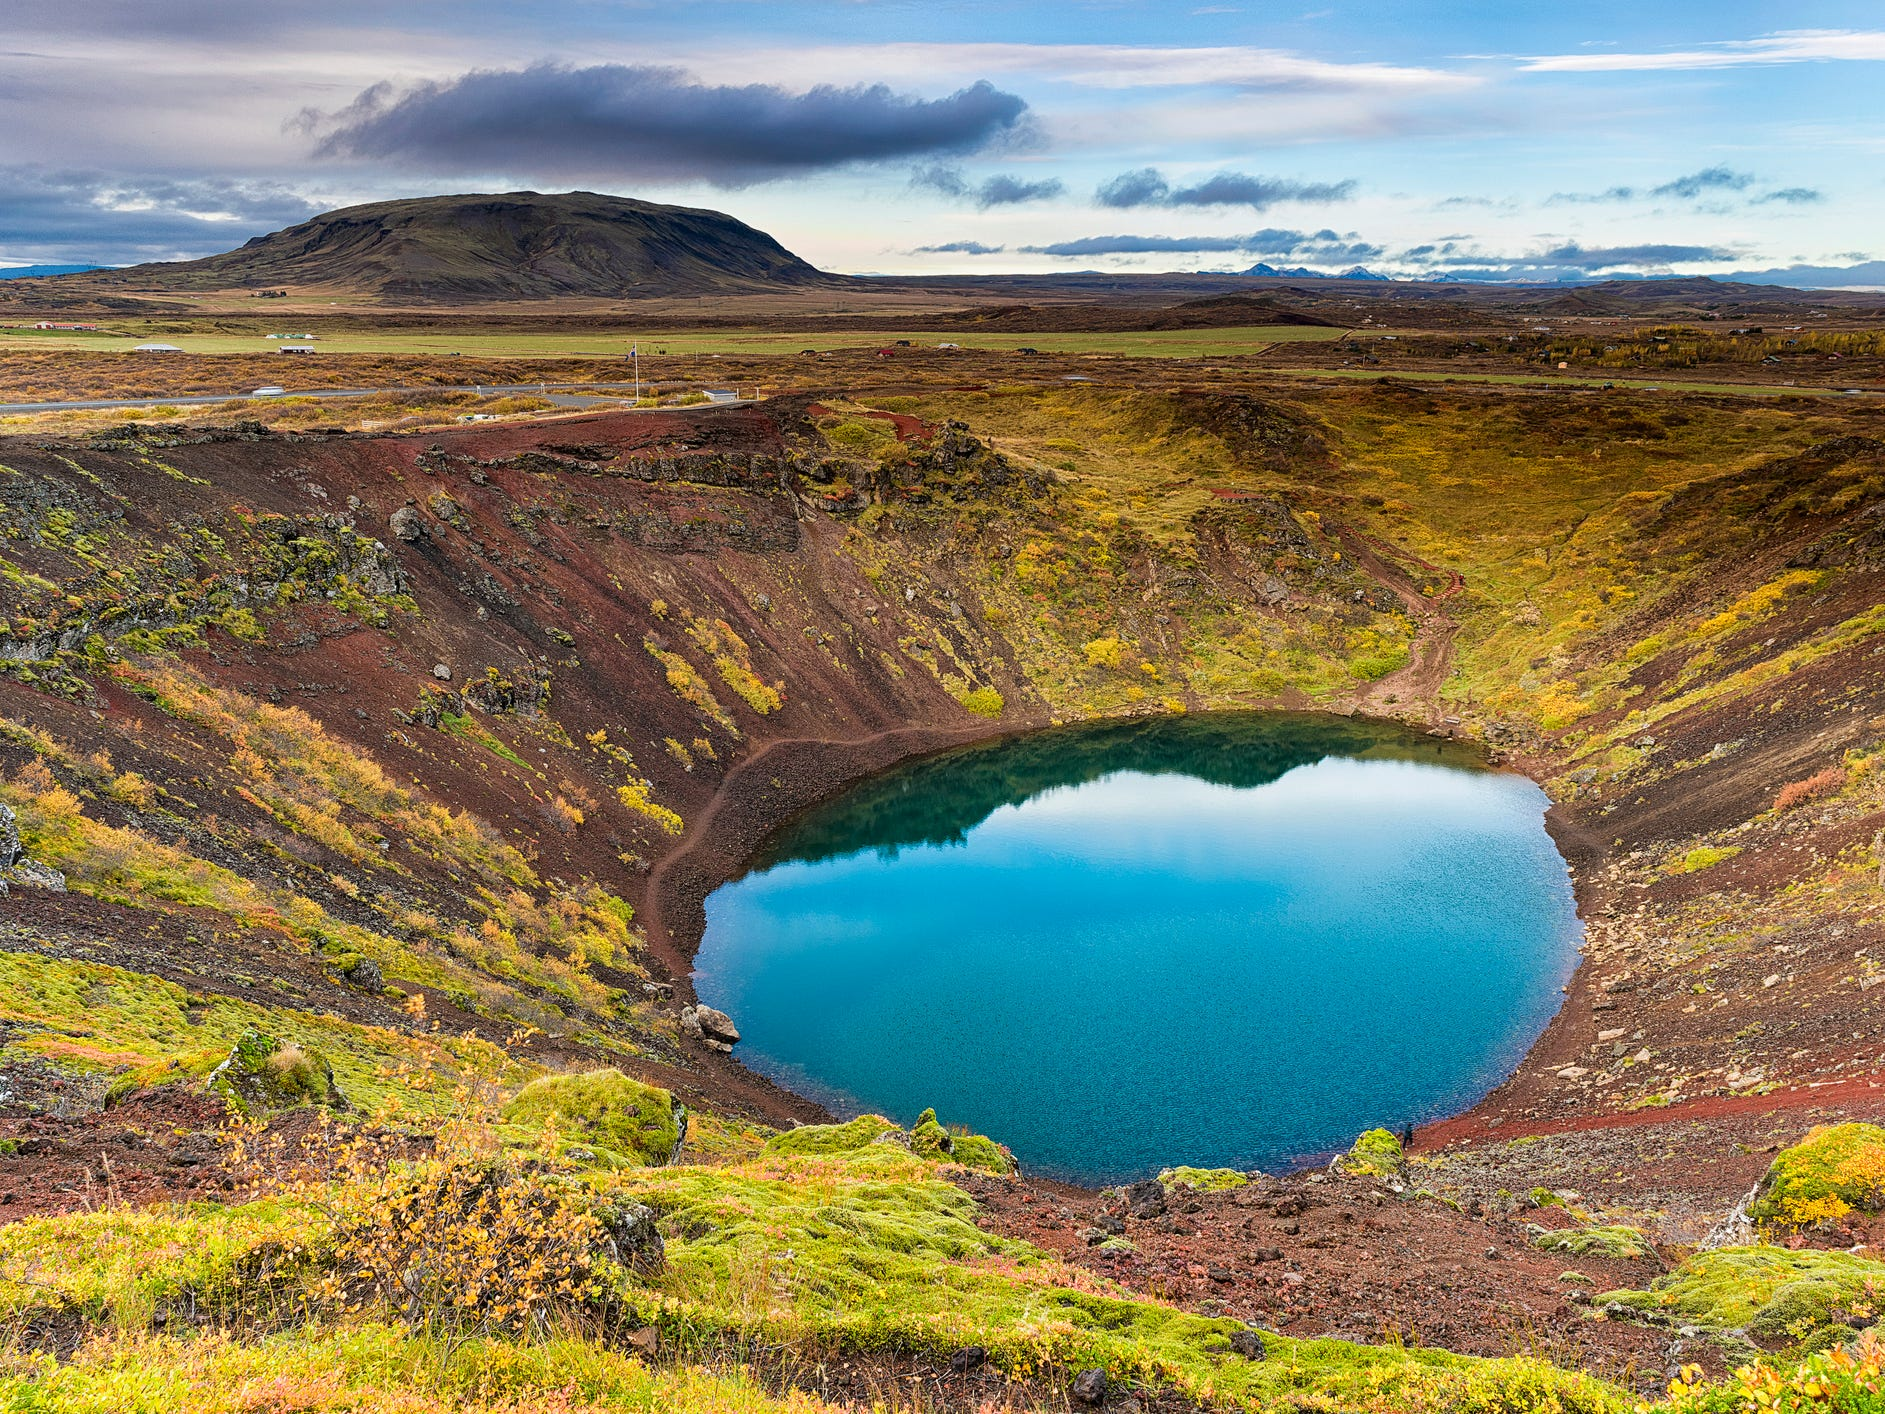 Kerið crater lake in Iceland.